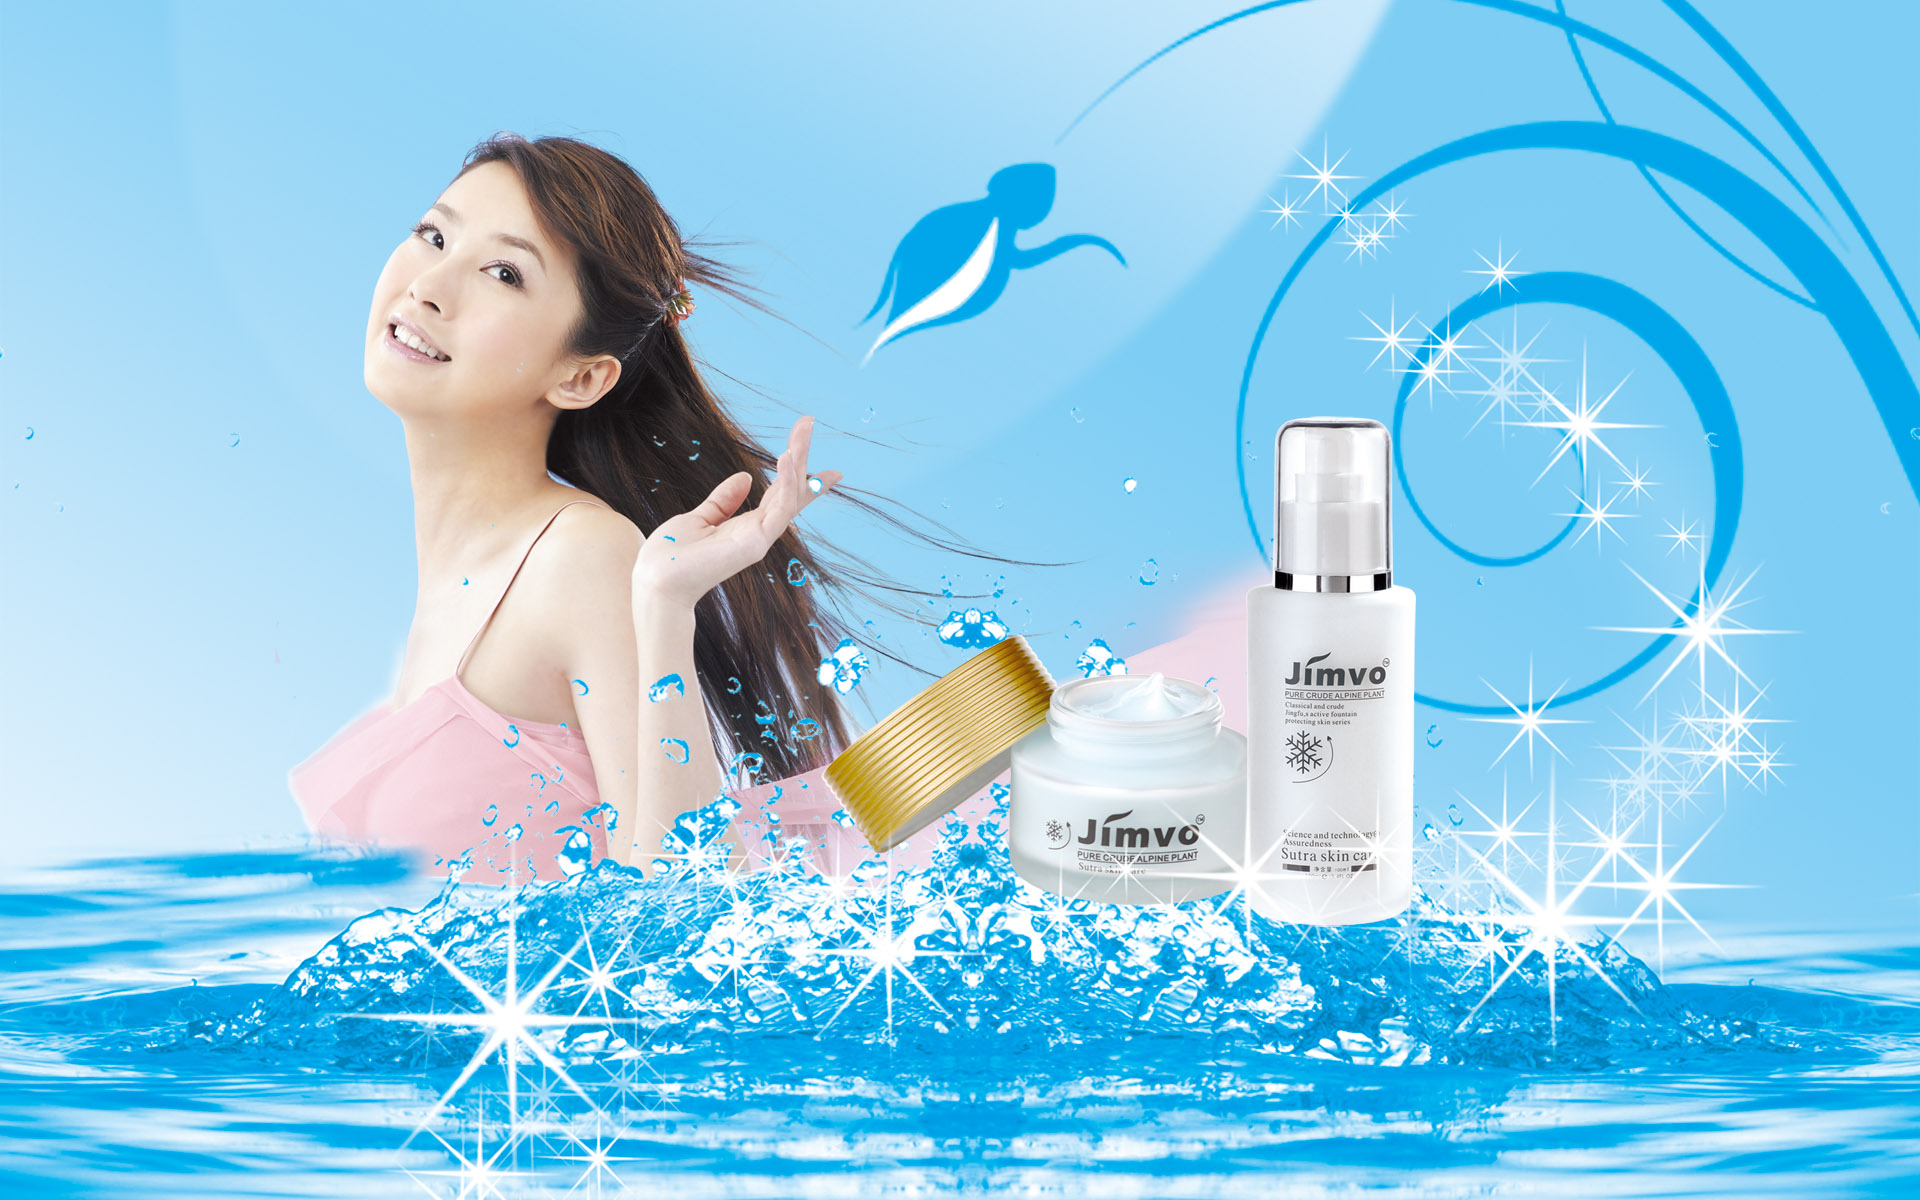 Cosmetic Advertising Wallpapers 9274